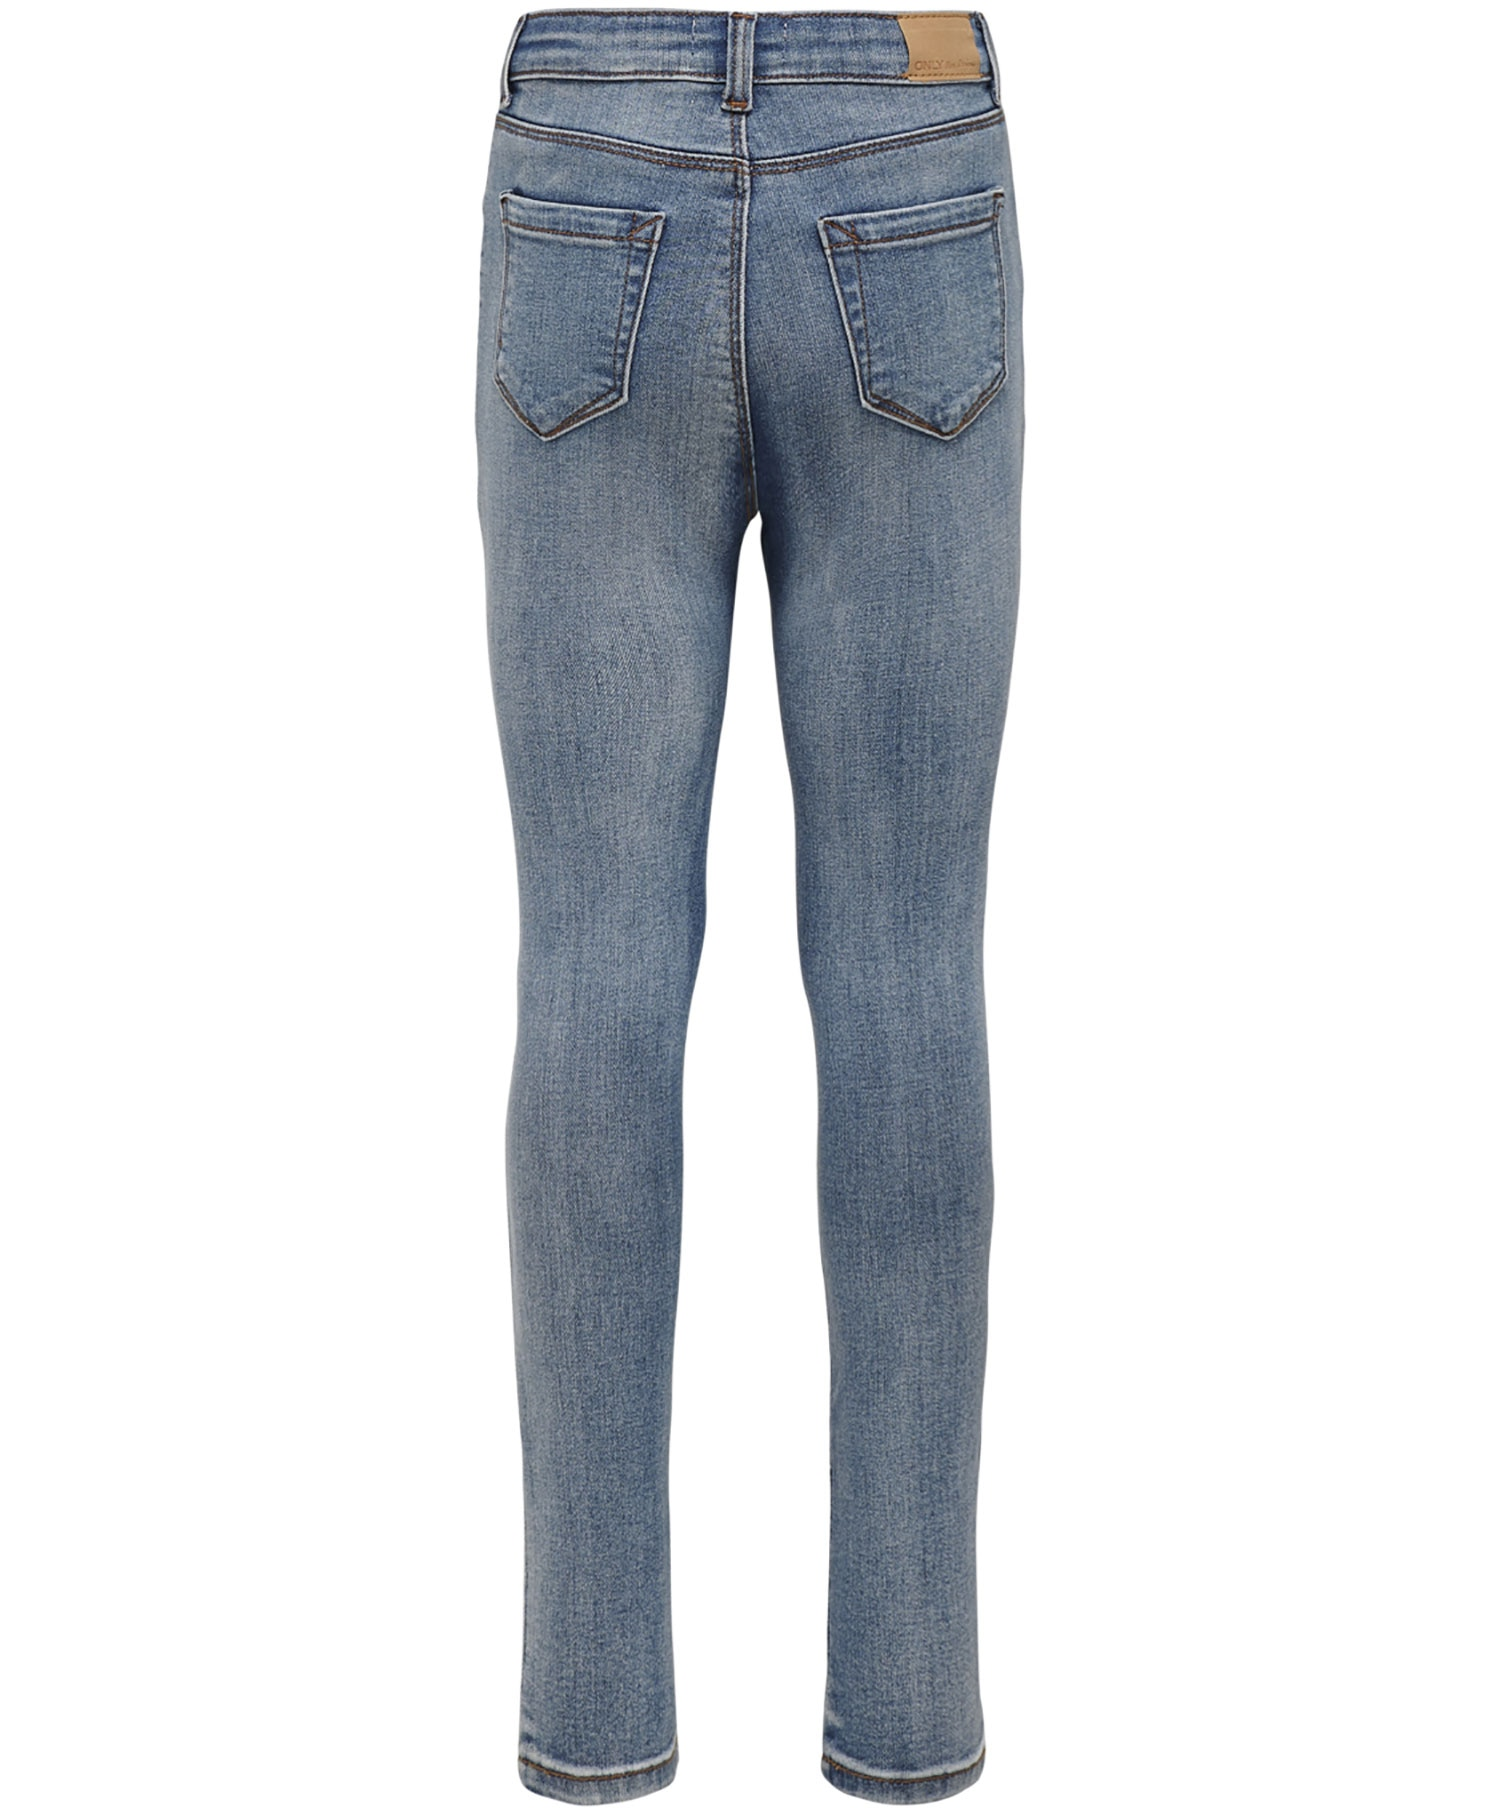 Only KIDS DNM JEANS